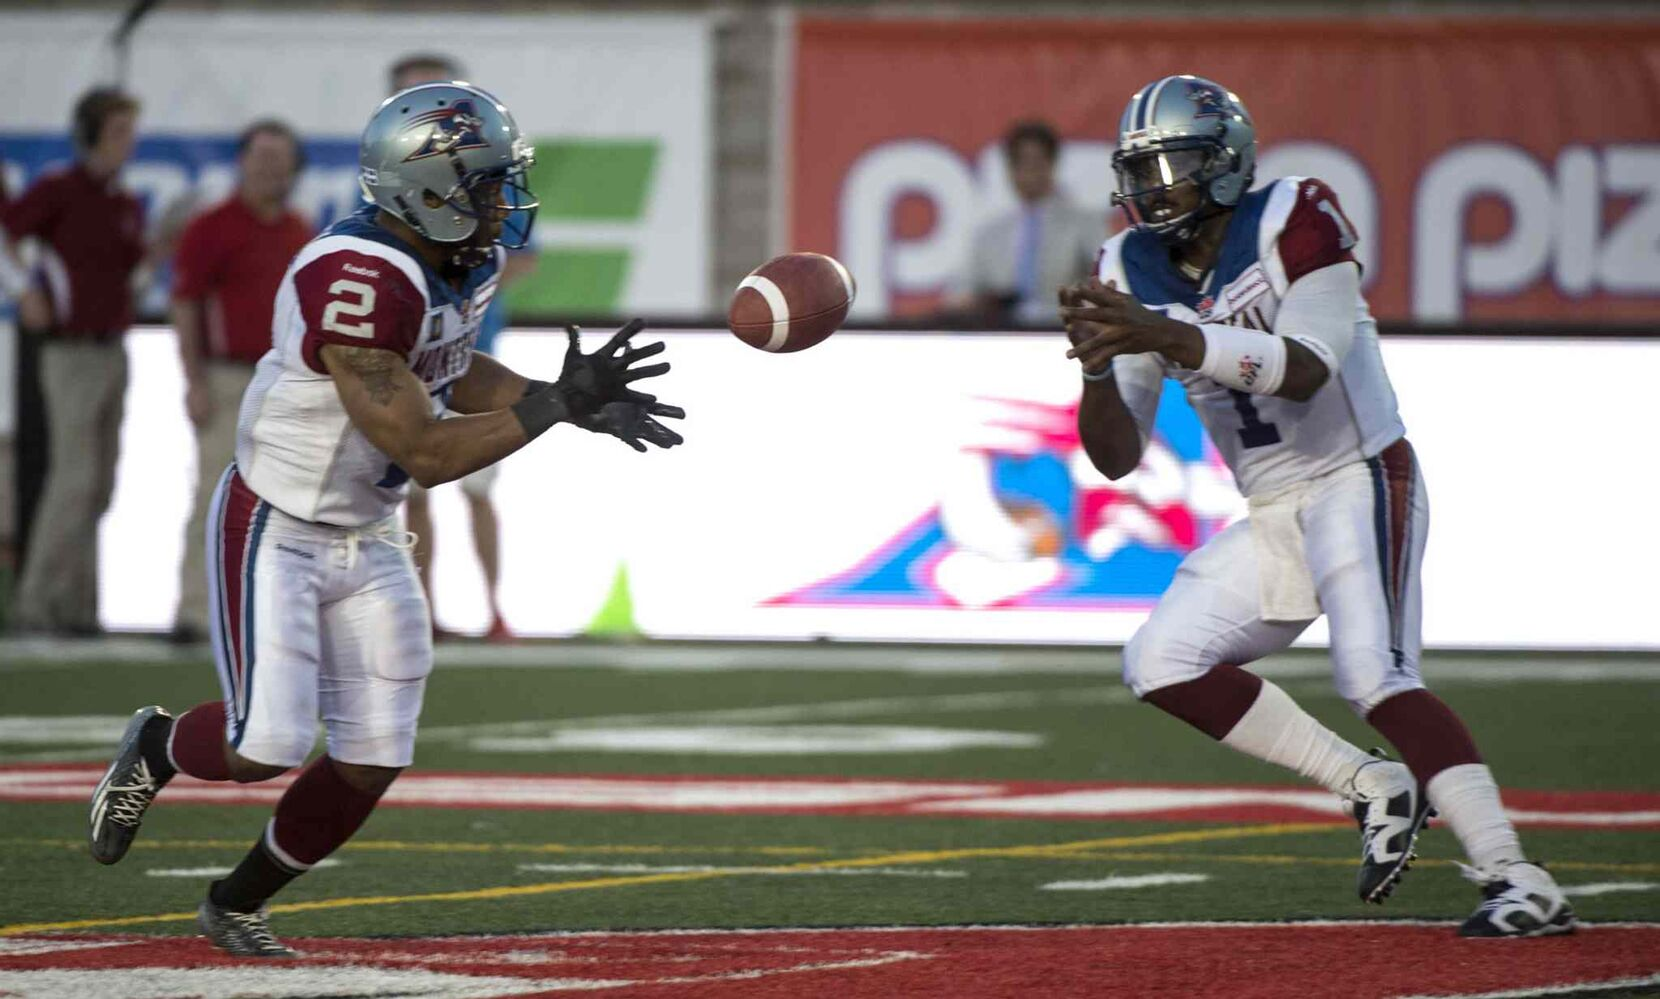 Montreal Alouettes' quarterback Troy Smith lobs the ball to teammate Brandon Whitaker as they face the Winnipeg Blue Bombers during the second quarter.